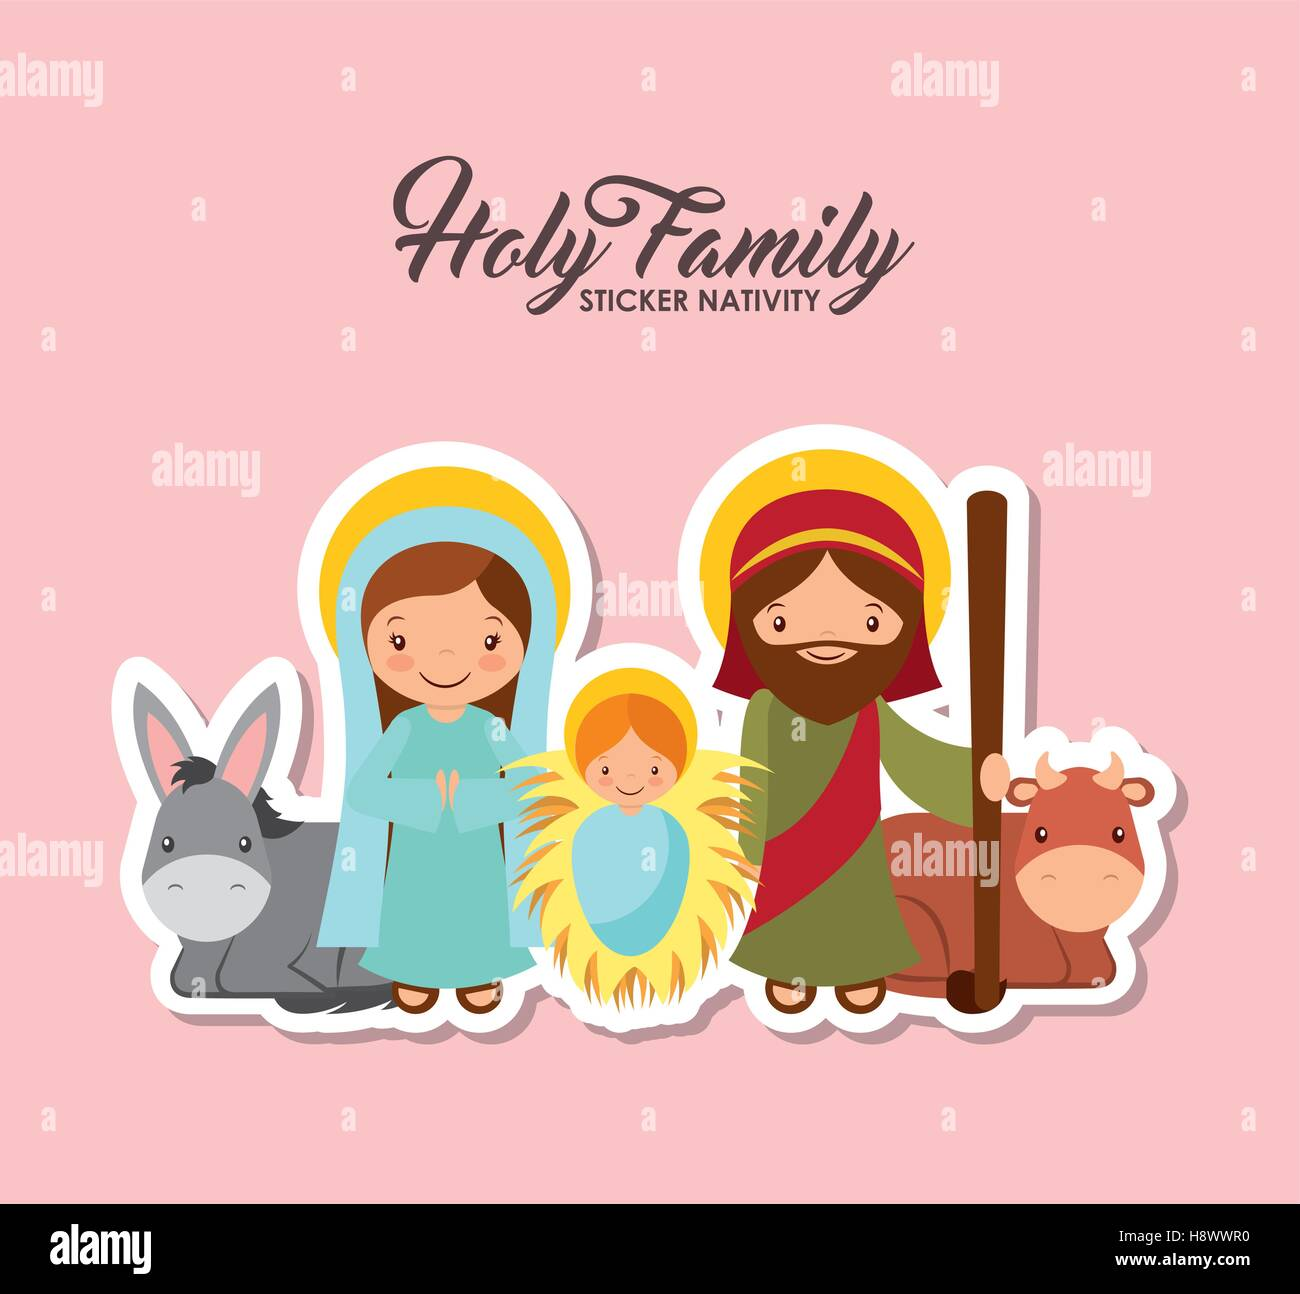 Family Prayer Saint Stock Vector Images - Alamy